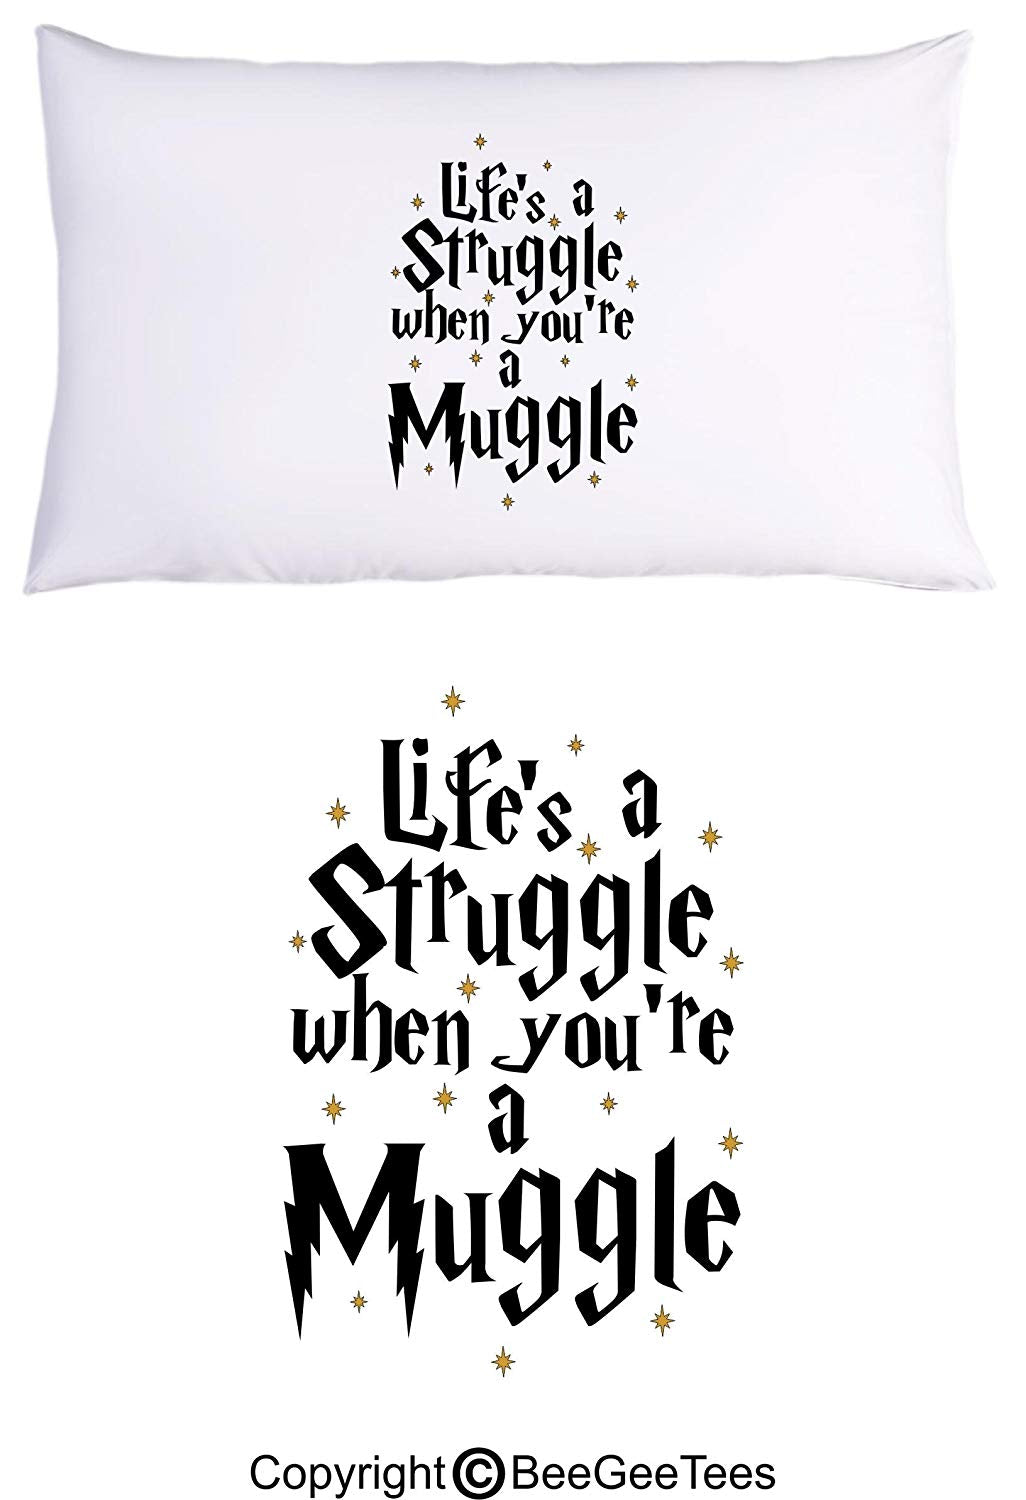 Life's A Struggle When You're A Muggle Funny Harry Potter Inspired Hogwarts Wizard Pillowcase by BeeGeeTees (1 Queen Pillowcase)